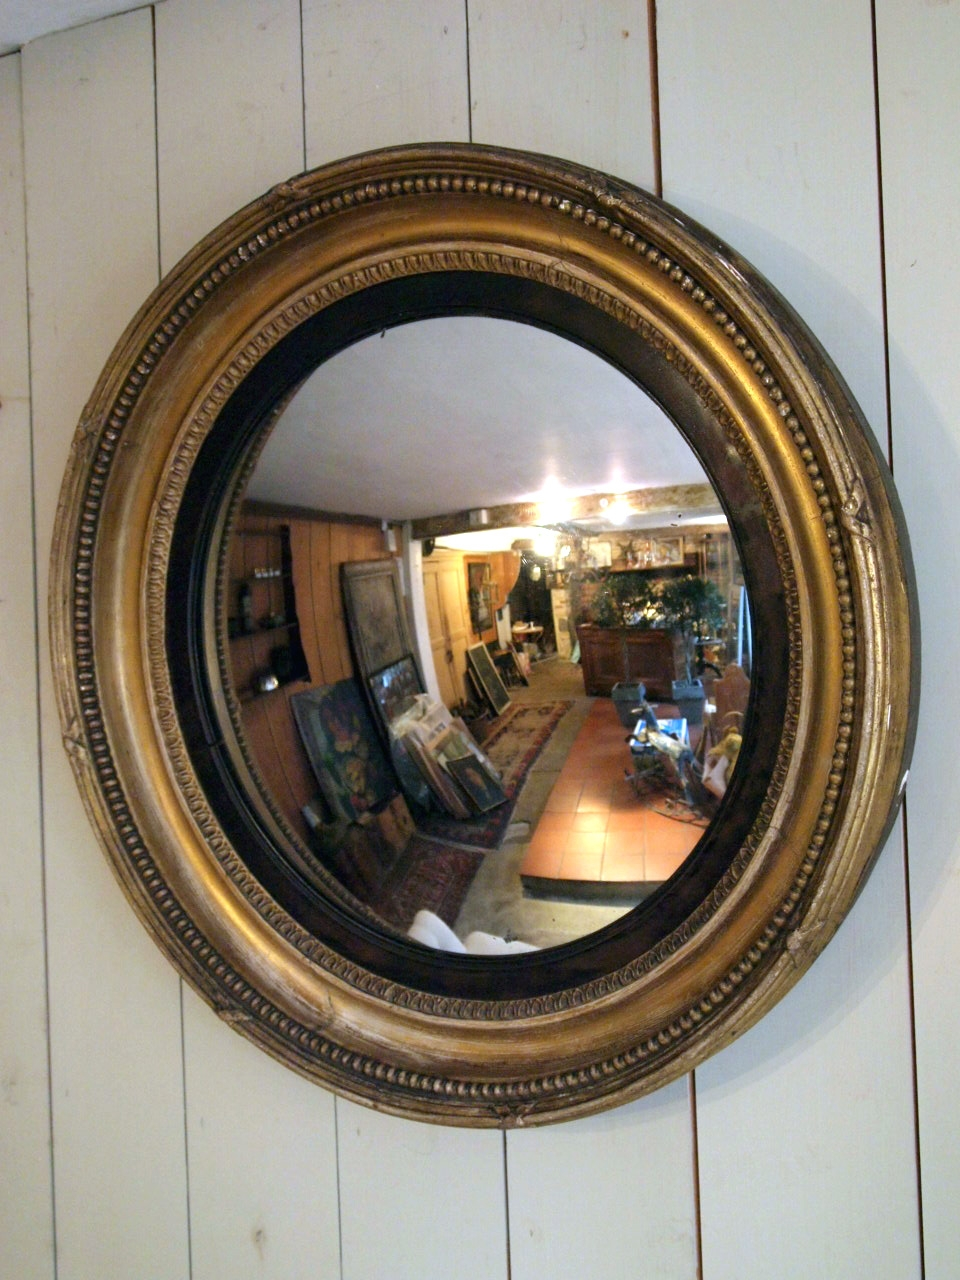 Antique Round Convex Mirror Puckhaber Decorative Antiques For Round Convex Mirrors (Image 2 of 15)